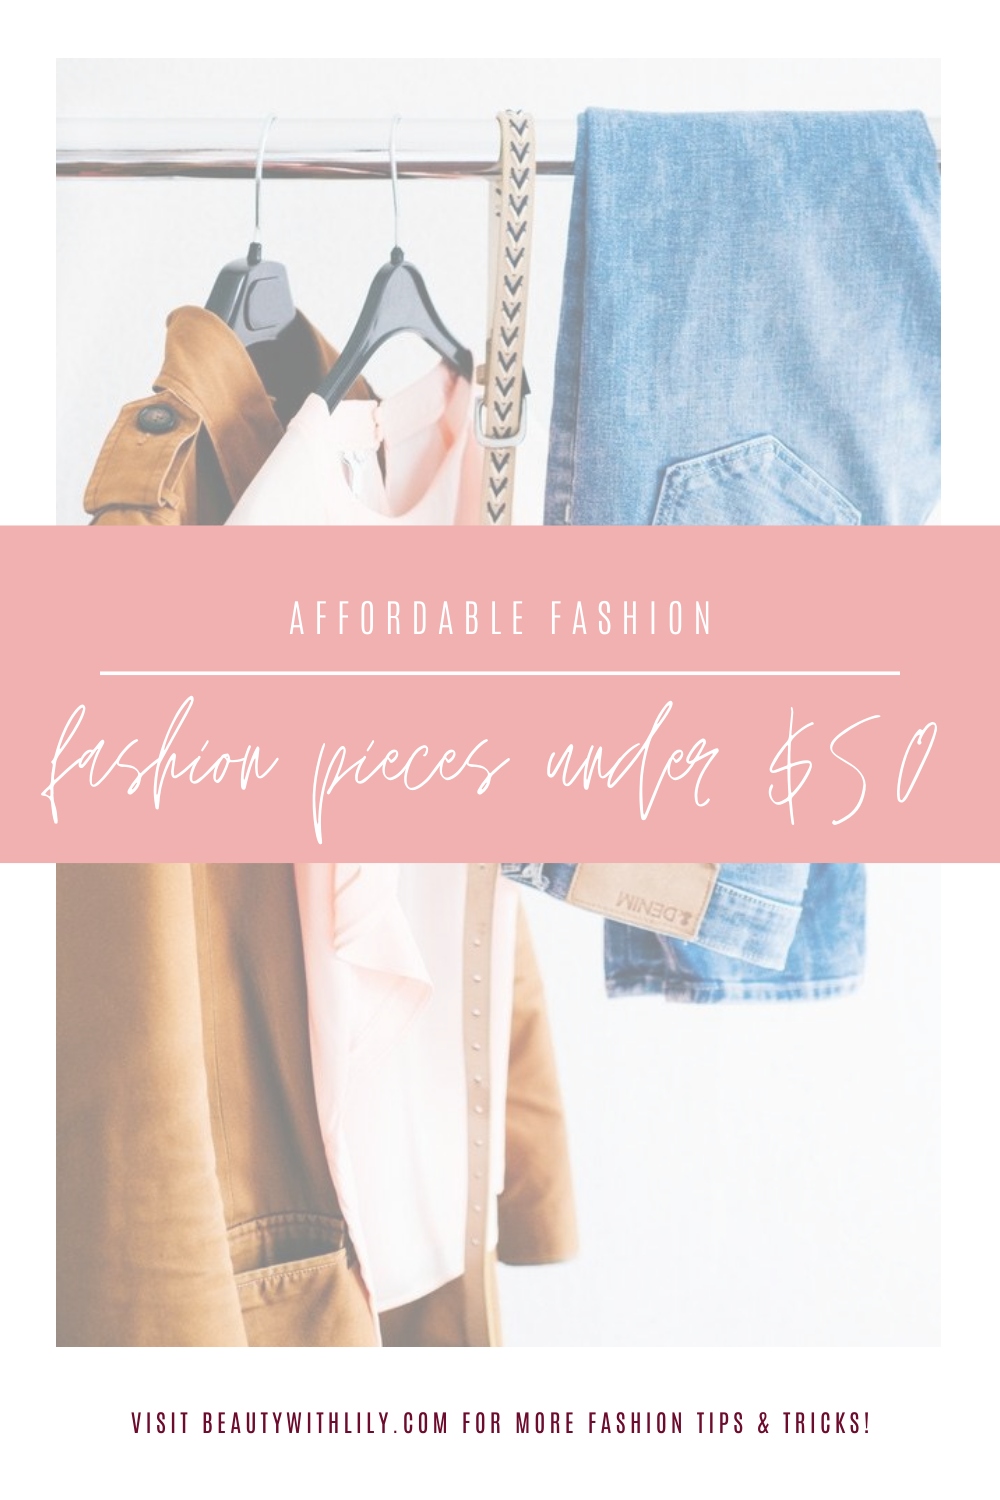 Fashion Pieces Under $50 // Best Trendy Pieces Under $50 // Affordable Fashion // Affordable Trendy Fashion // Summer Fashion // Fall Fashion // Transitional Fashion Pieces | Beauty With Lily